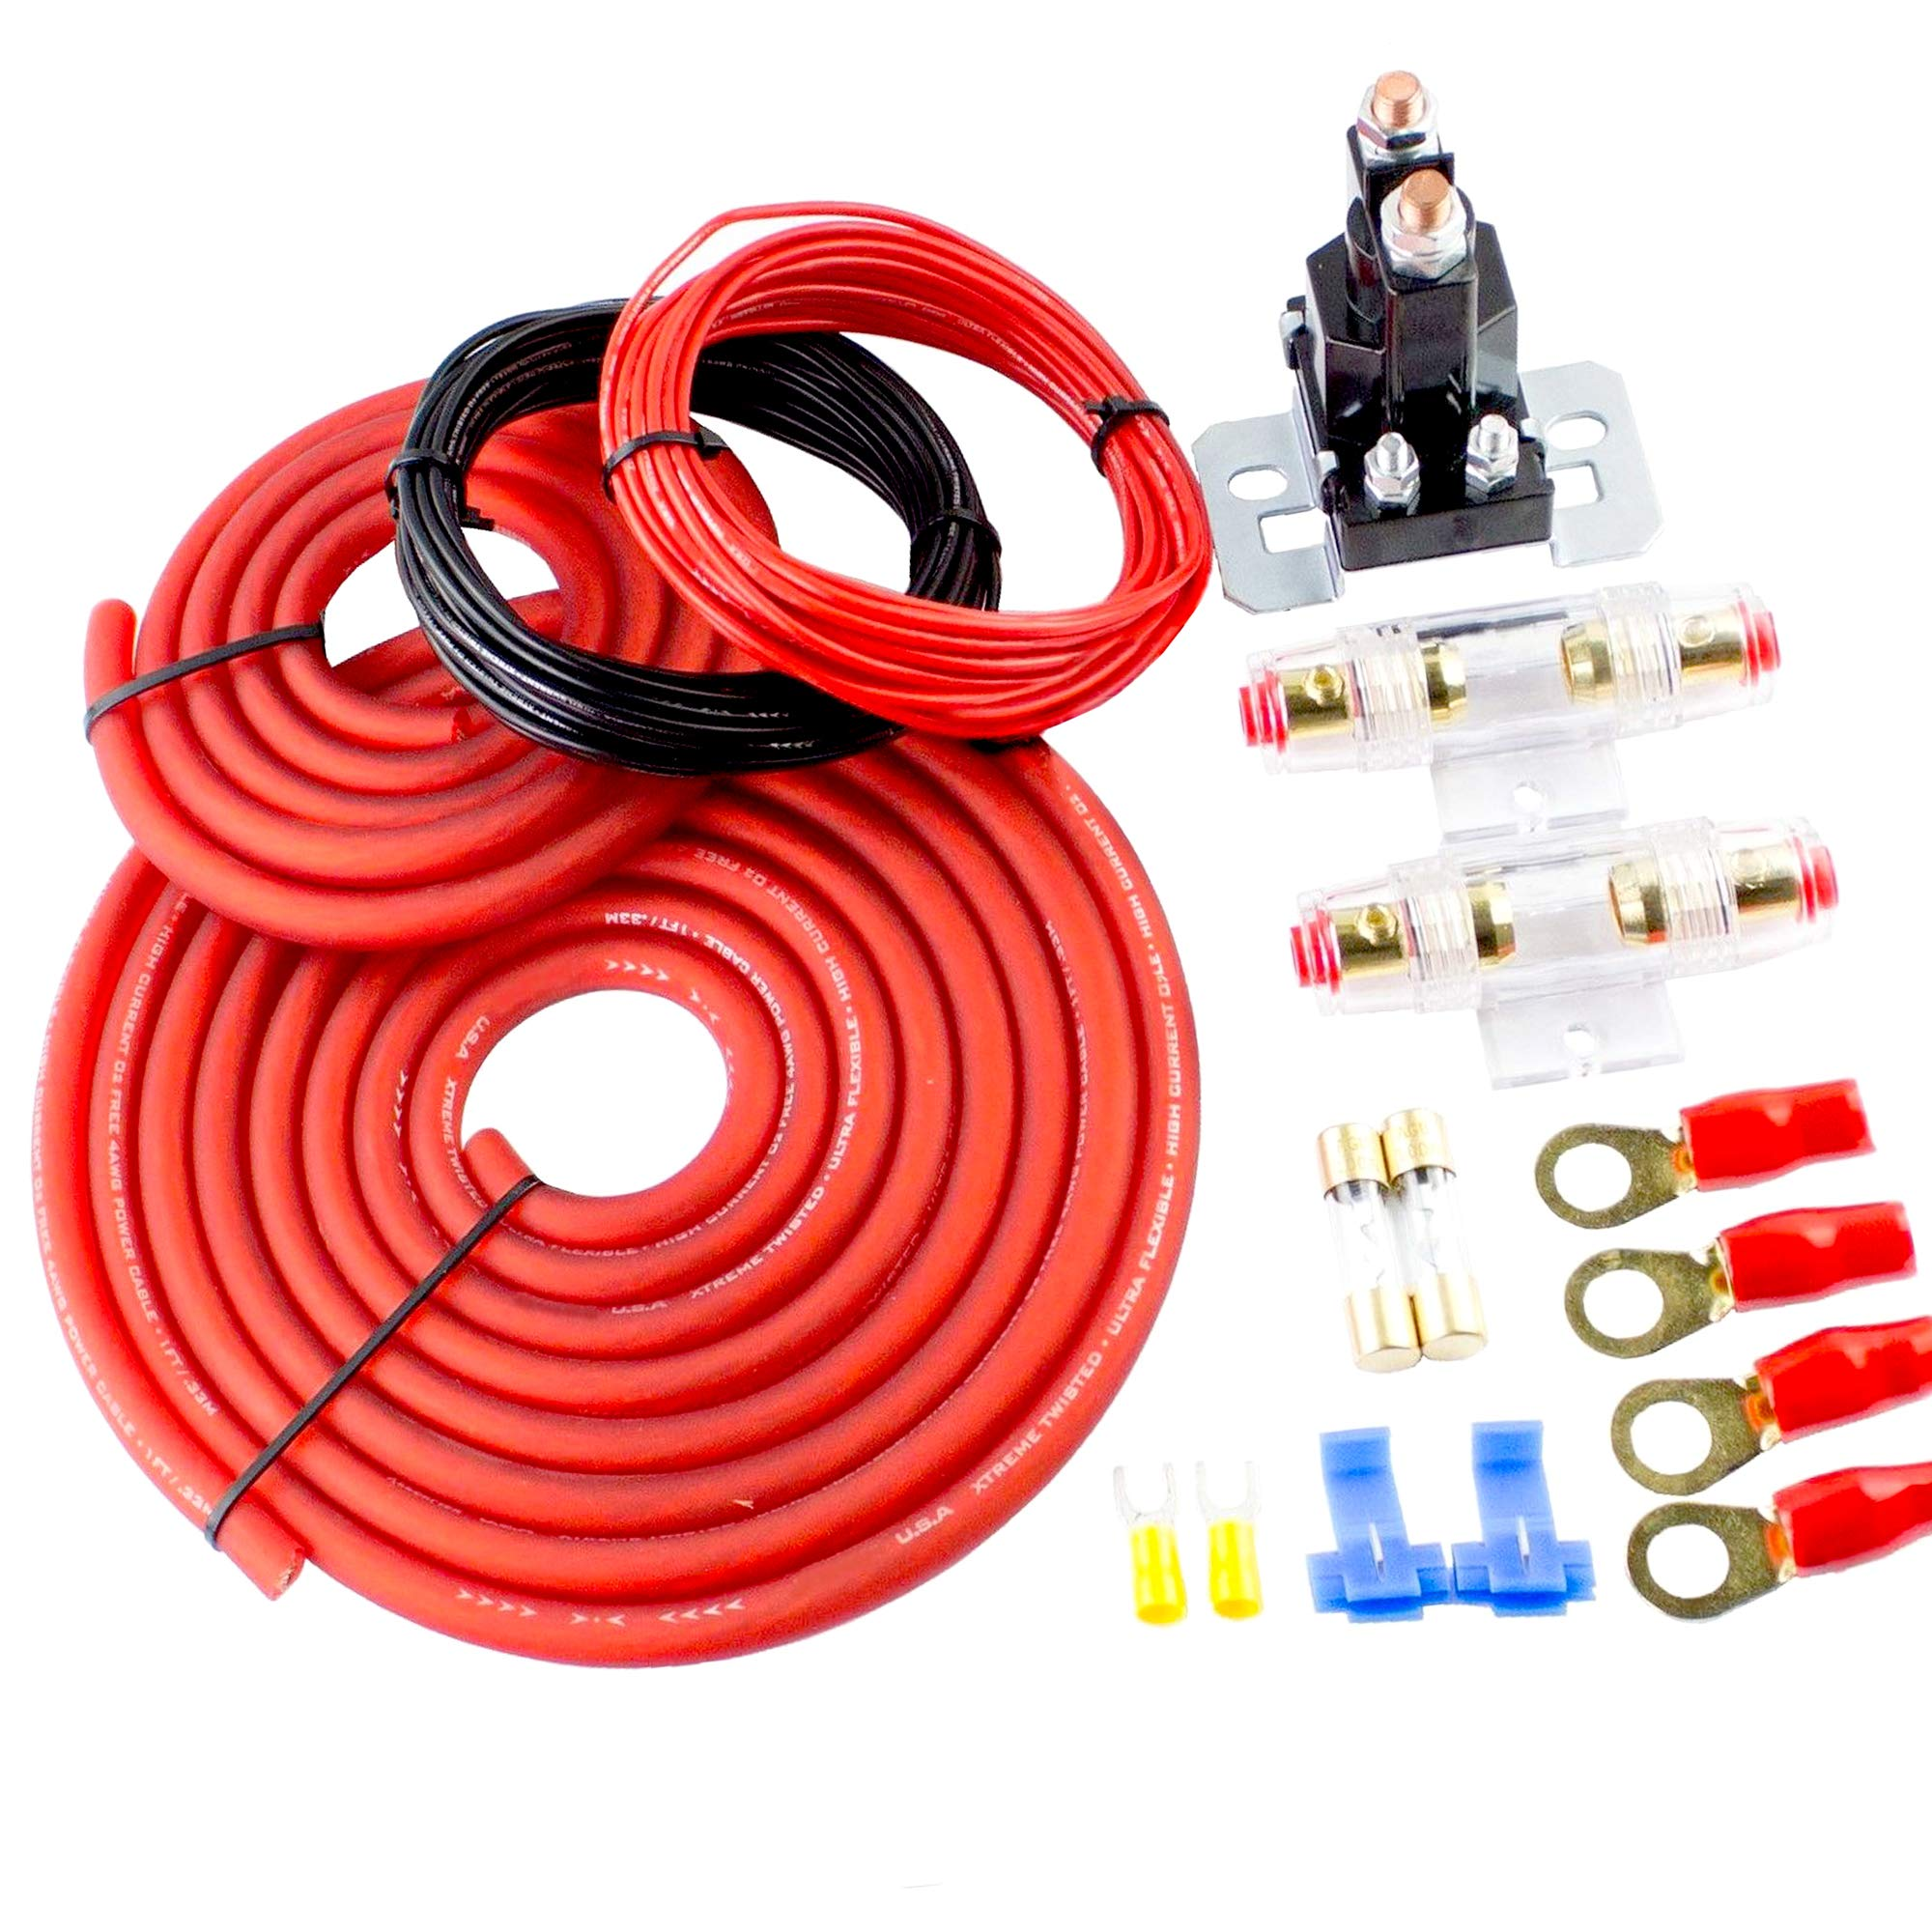 [DIAGRAM_38EU]  Amazon.com: Amplifier Wiring kit Gauge amp Car Audio Type W Fuses  Subwoofers Speakers AMP Dual Auxiliary Battery Isolator Chargers Cables  Power Ground Cable: Car Electronics | Car Audio Battery Wiring |  | Amazon.com